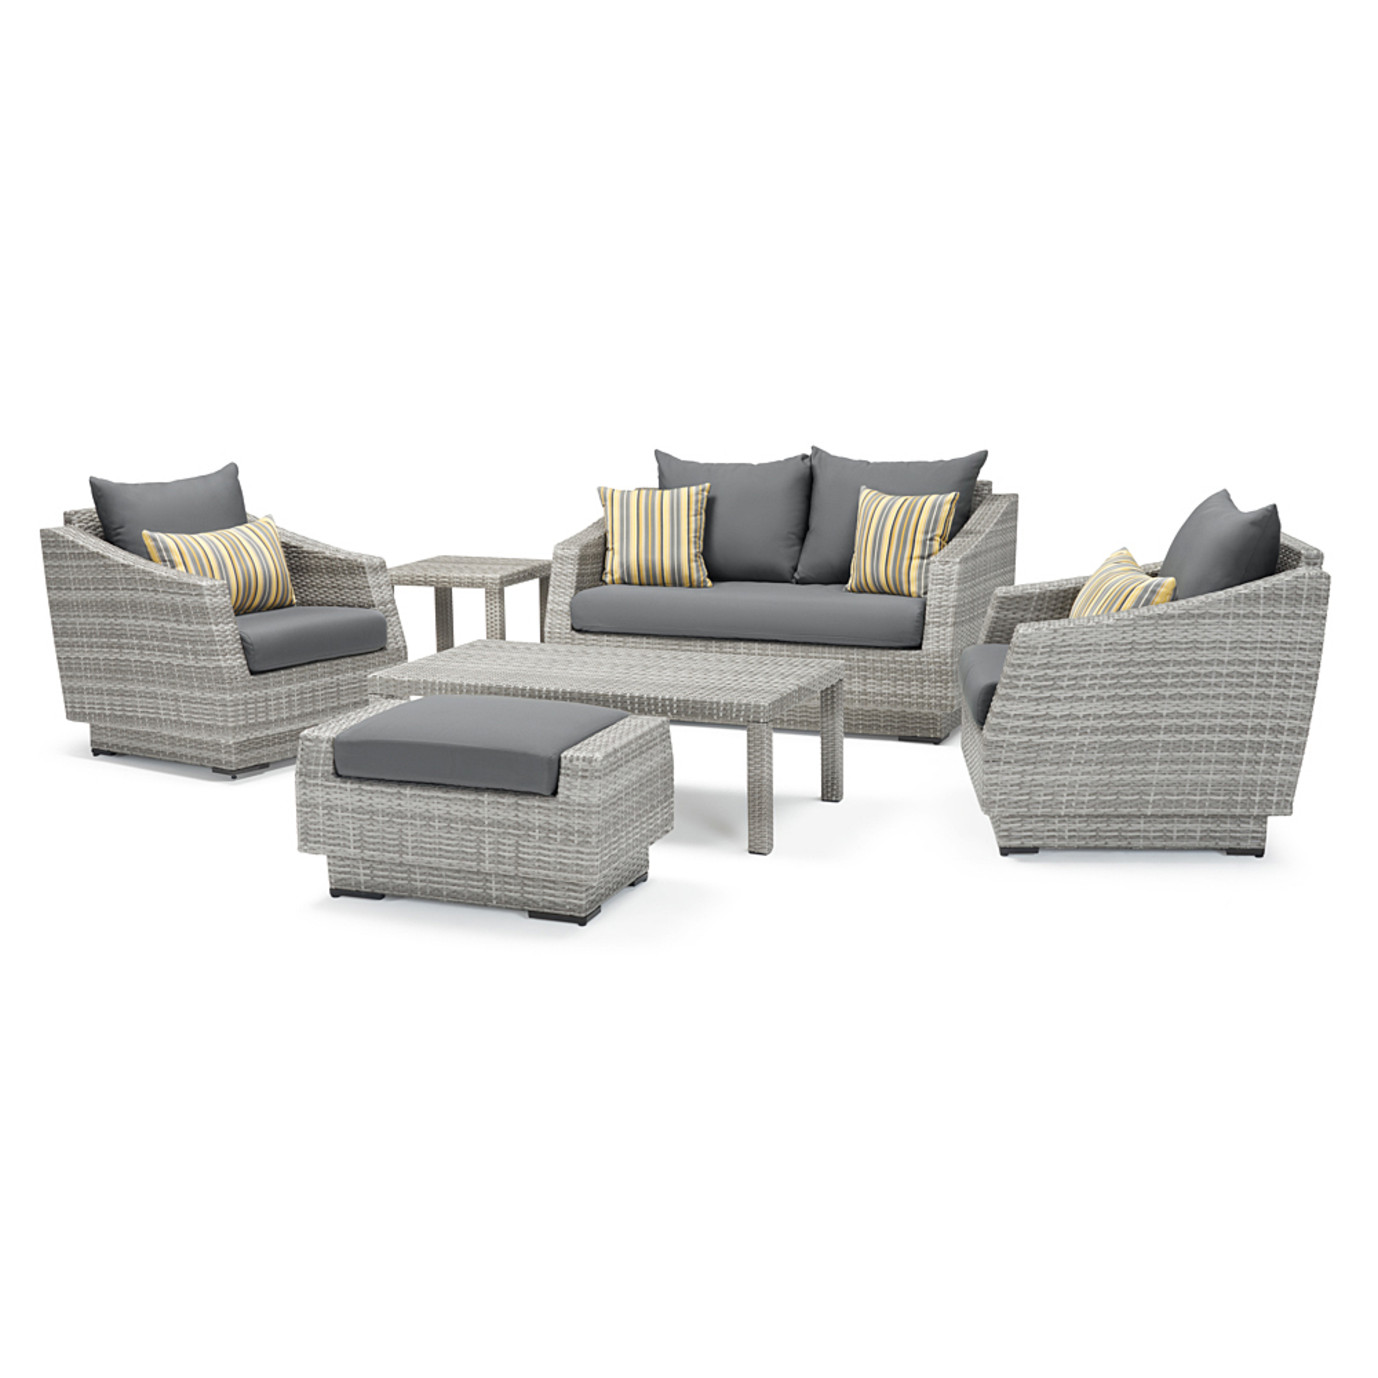 Cannes™ 6 Piece Love and Club Seating Set - Charcoal Gray